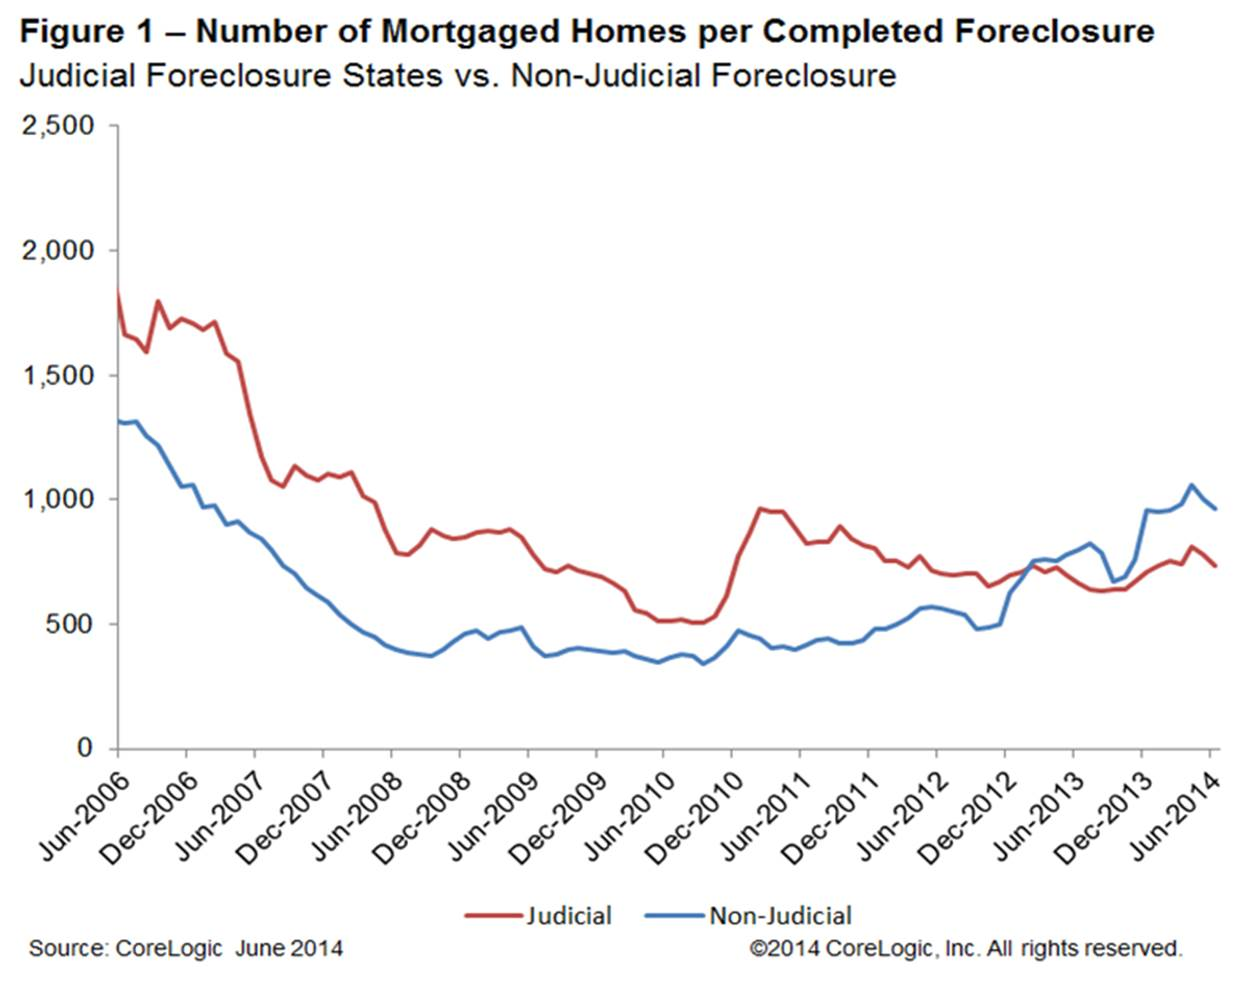 Number of Morgaged Homes per Completed Foreclosure